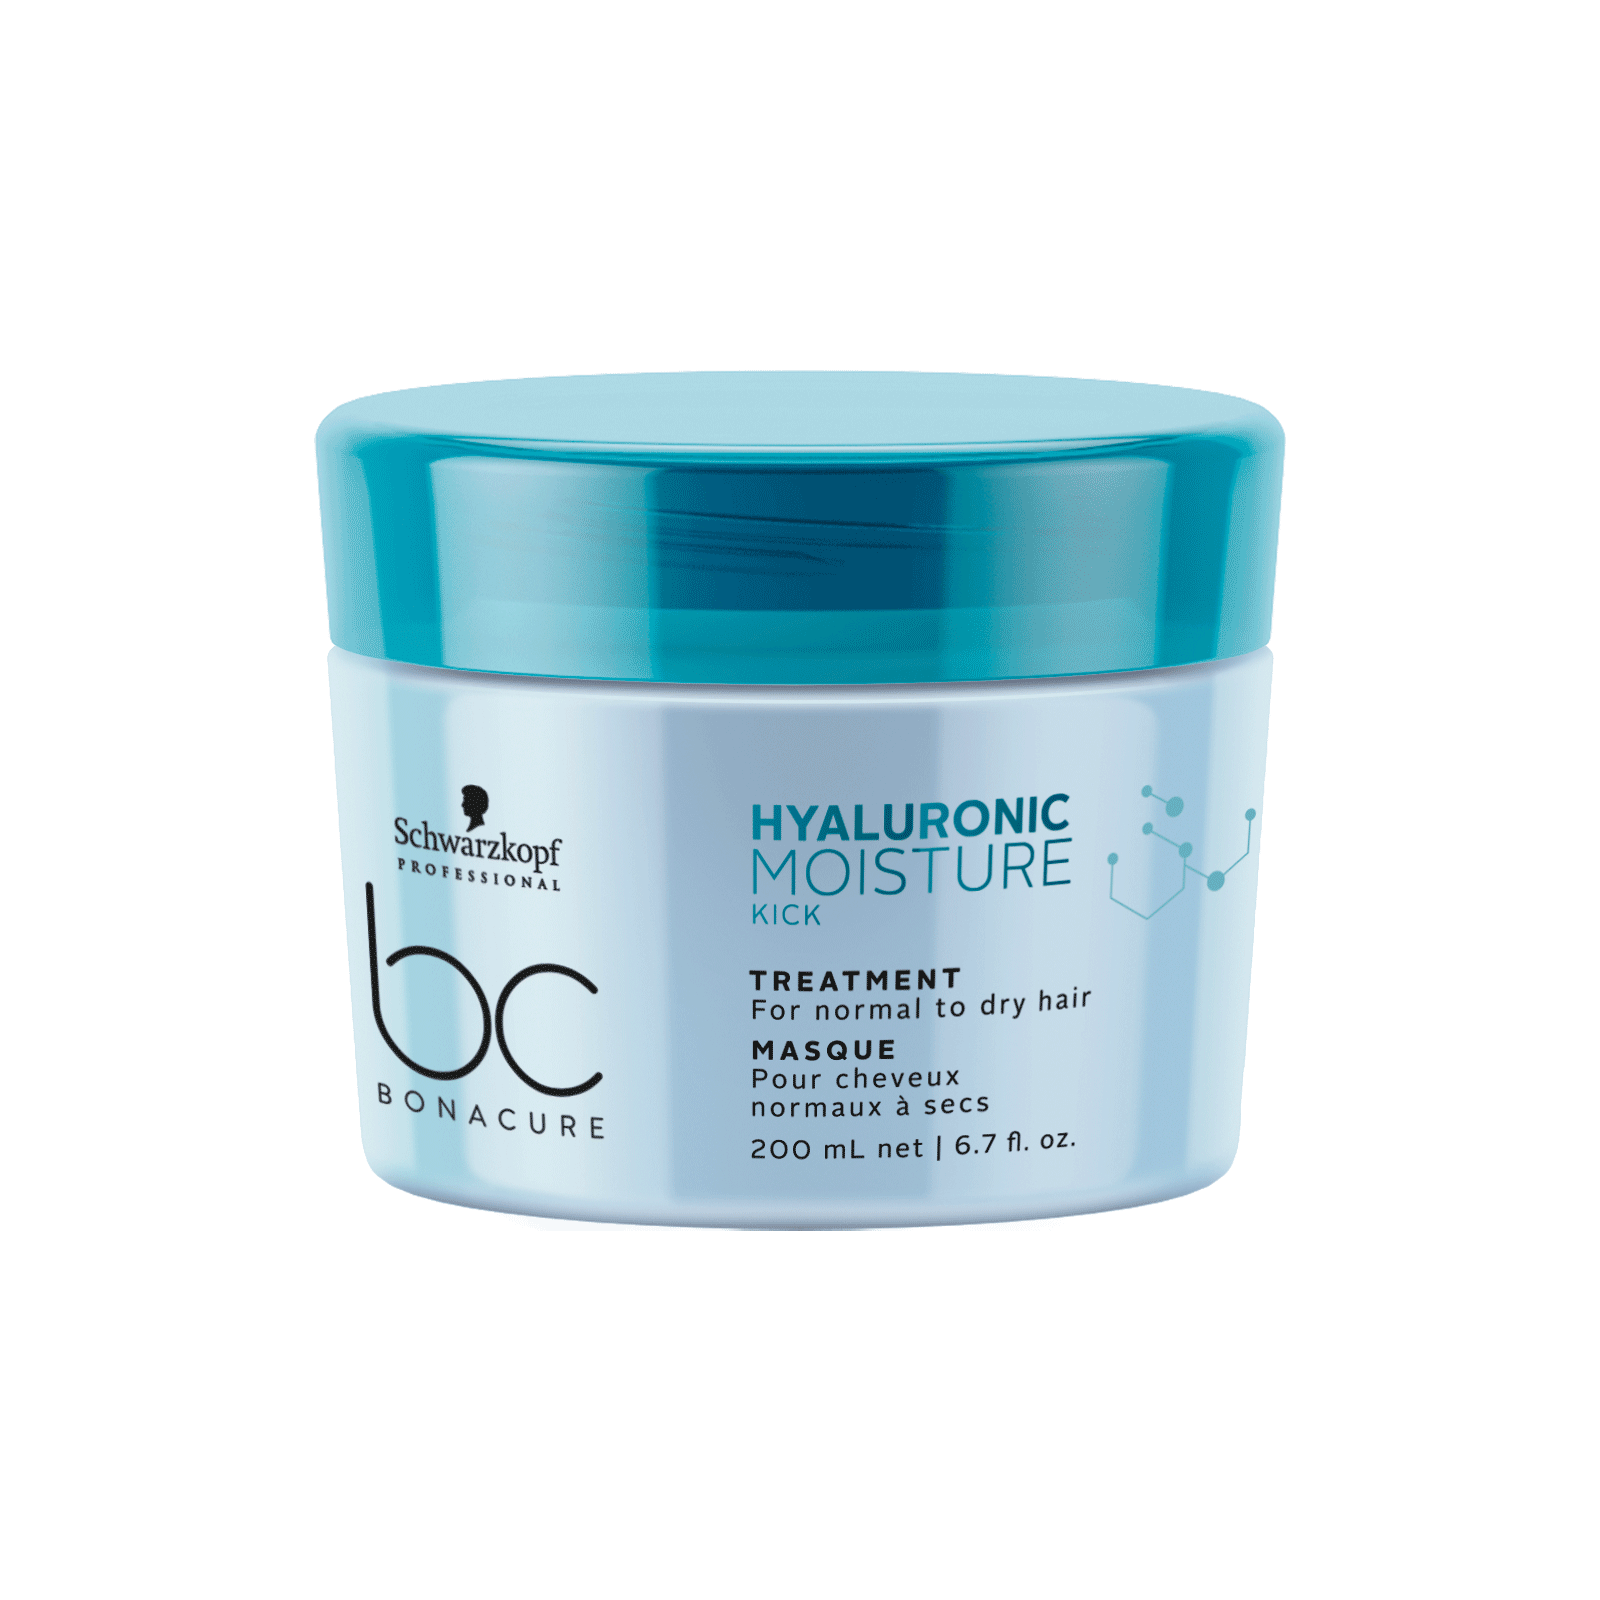 Bonacure Hyaluronic Moisture Kick Treatment